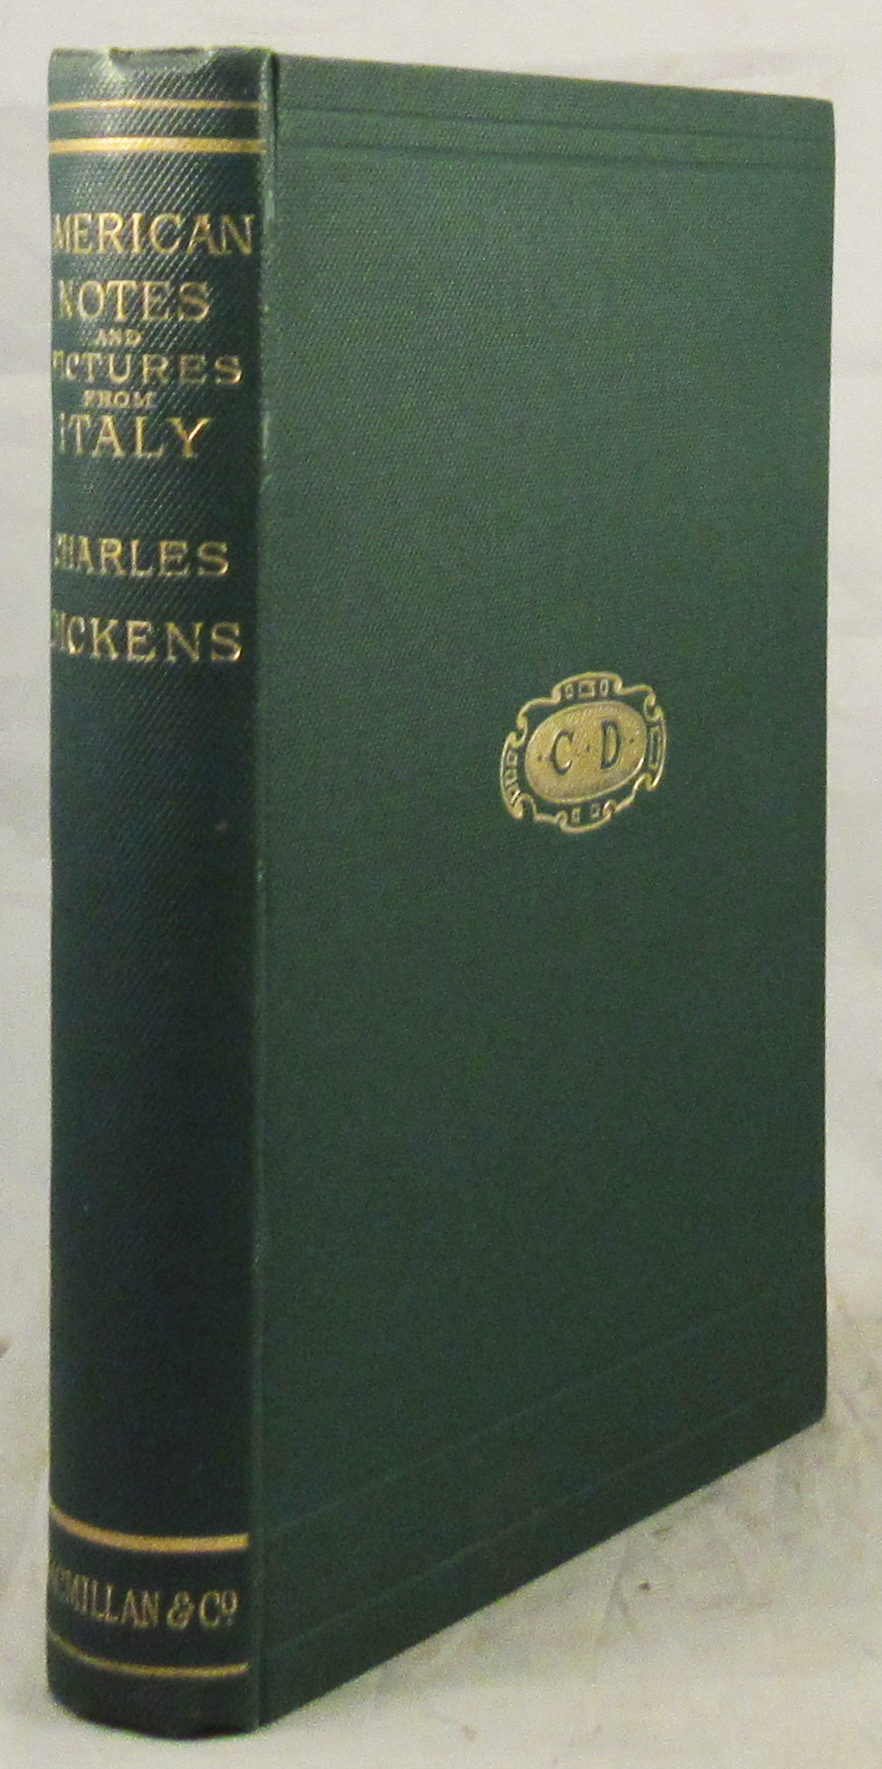 AMERICAN NOTES [FOR GENERAL CIRCULATION] And PICTURES FROM ITALY. Charles Dickens.